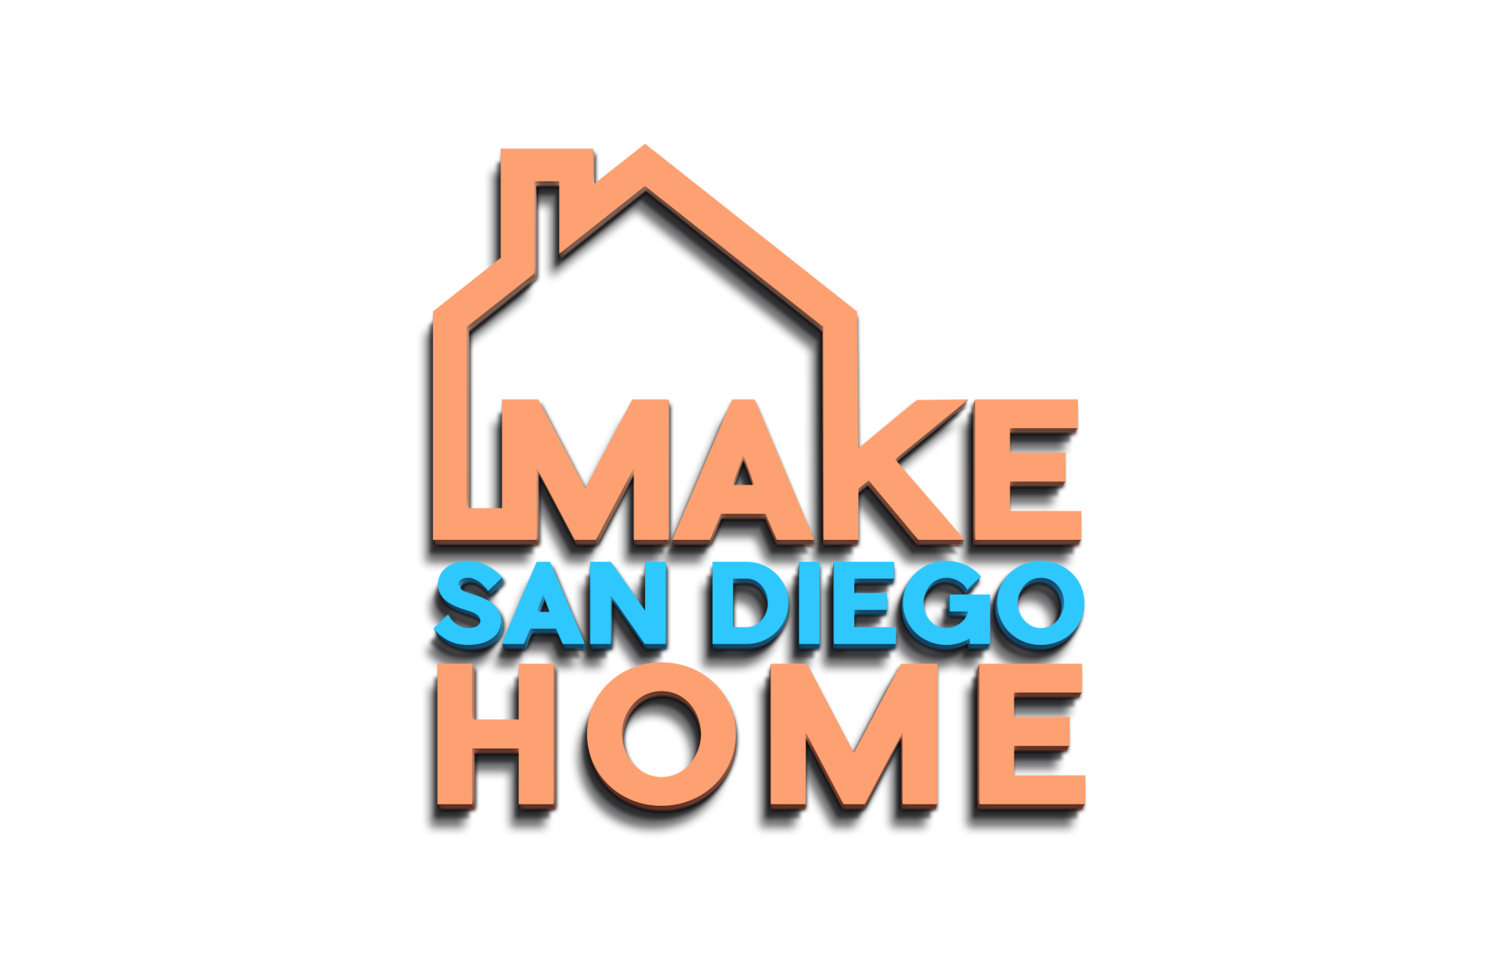 Make San Diego Home